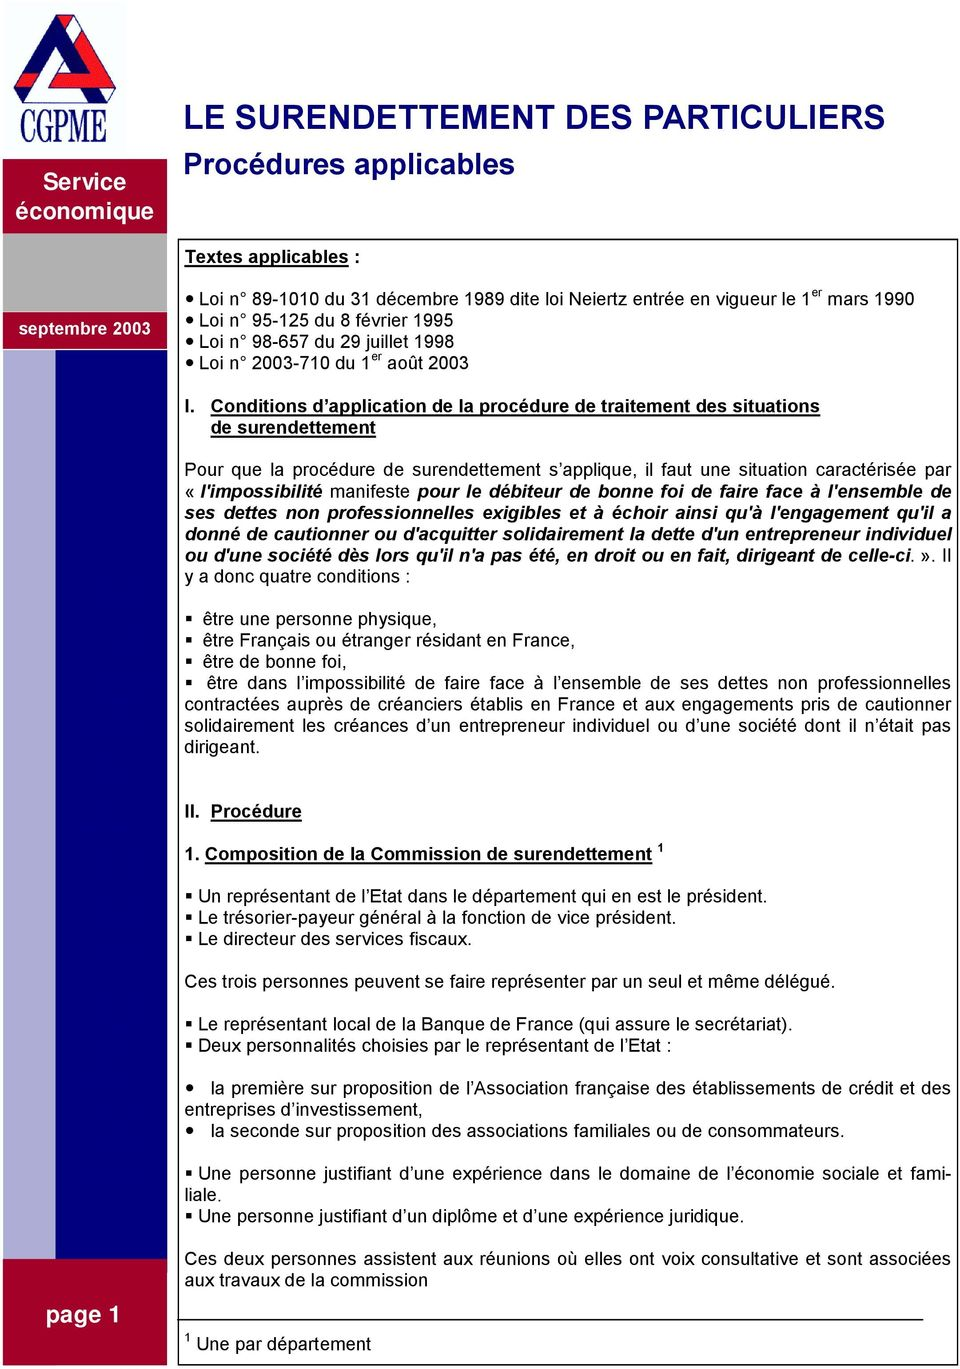 Conditions d application de la procédure de traitement des situations de surendettement page 1 Pour que la procédure de surendettement s applique, il faut une situation caractérisée par